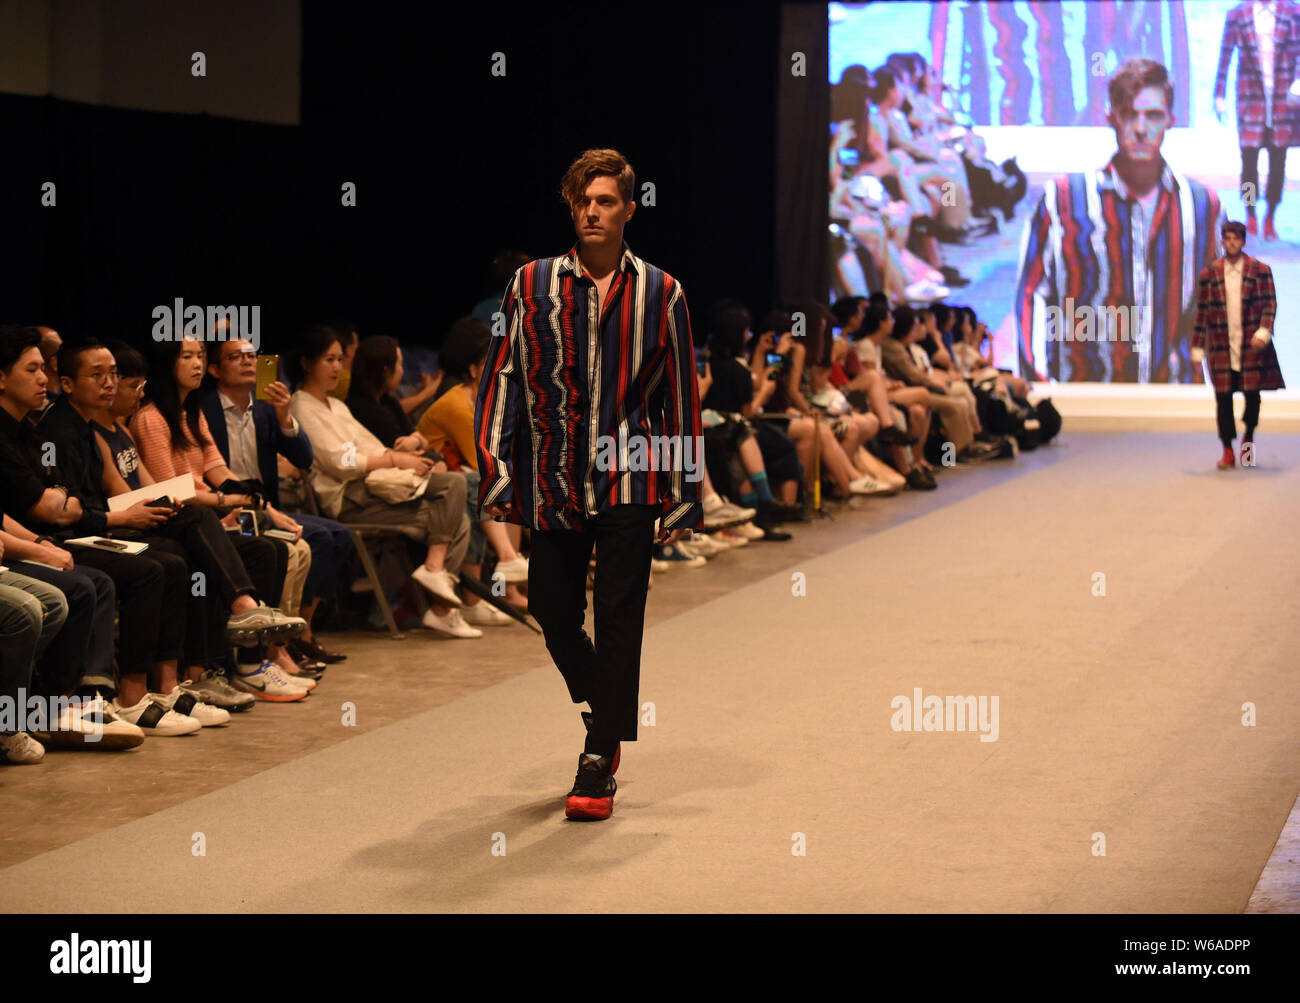 A Model Displays A New Creation By A Graduate During A Fashion Show For Graduation Design Works At The Campus Of Hong Kong Polytechnic University Pol Stock Photo Alamy